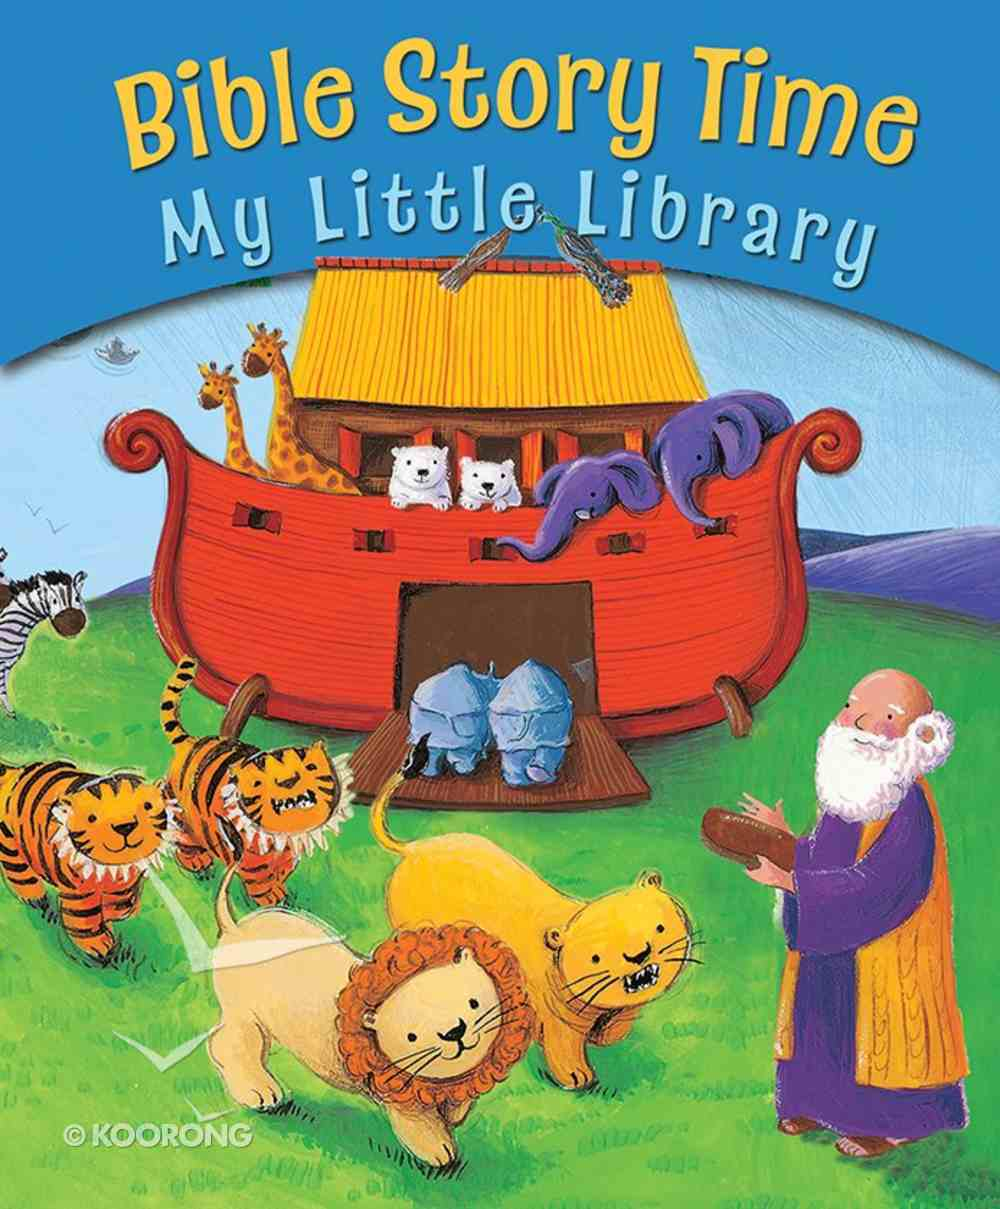 Bible Story Time: My Little Library Paperback